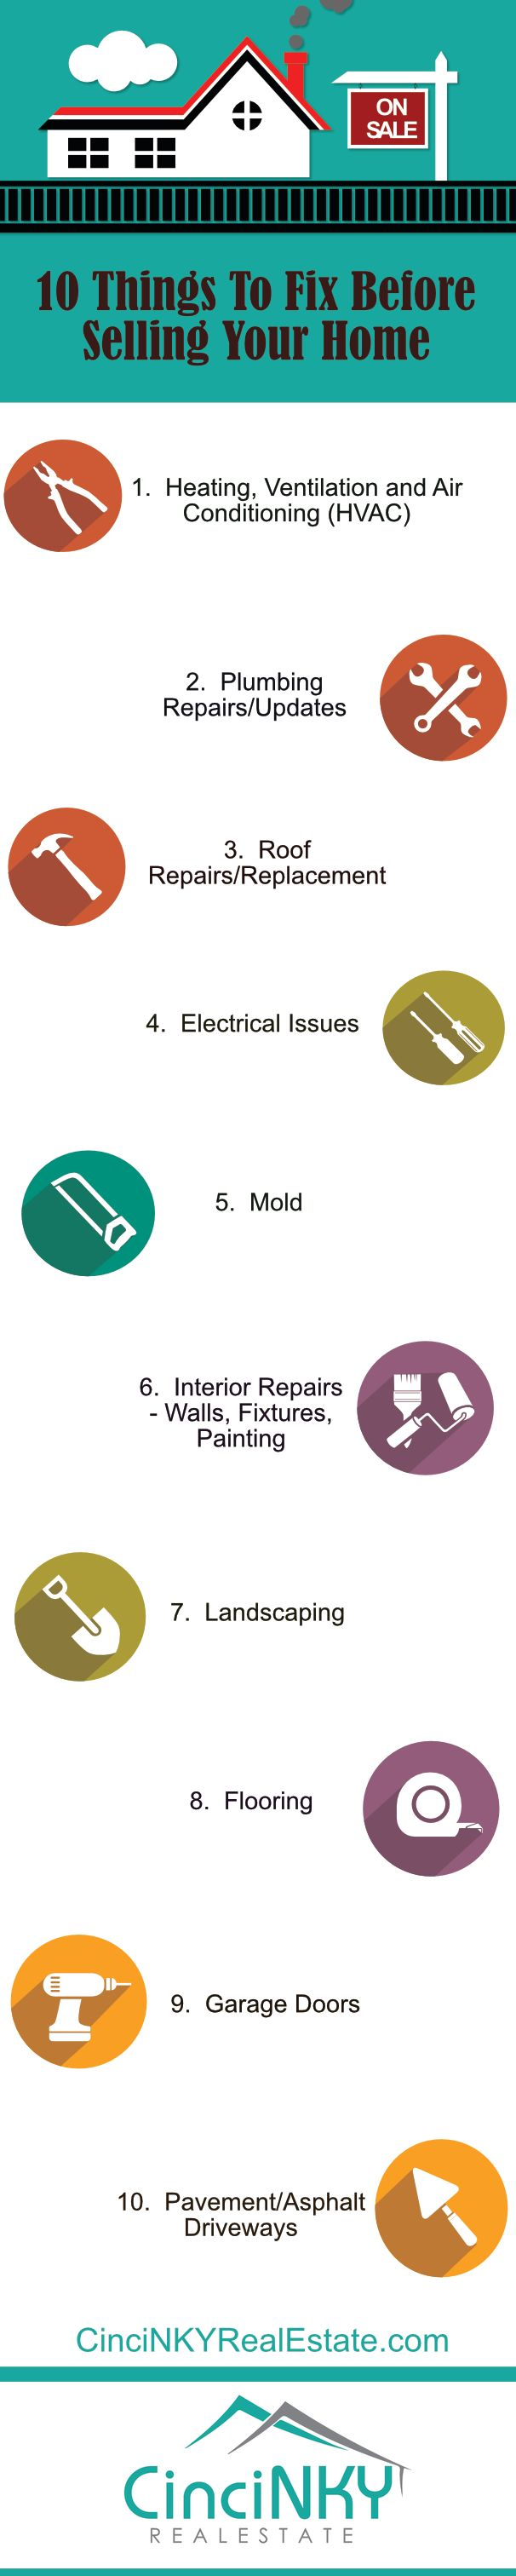 Here is a list of 10 things you should be looking at and repairing if need be prior to selling your home. Fix these issues and your home will show better than many other homes on the market. Results are more buyer interest, greater likelihood to close and better final sales price.